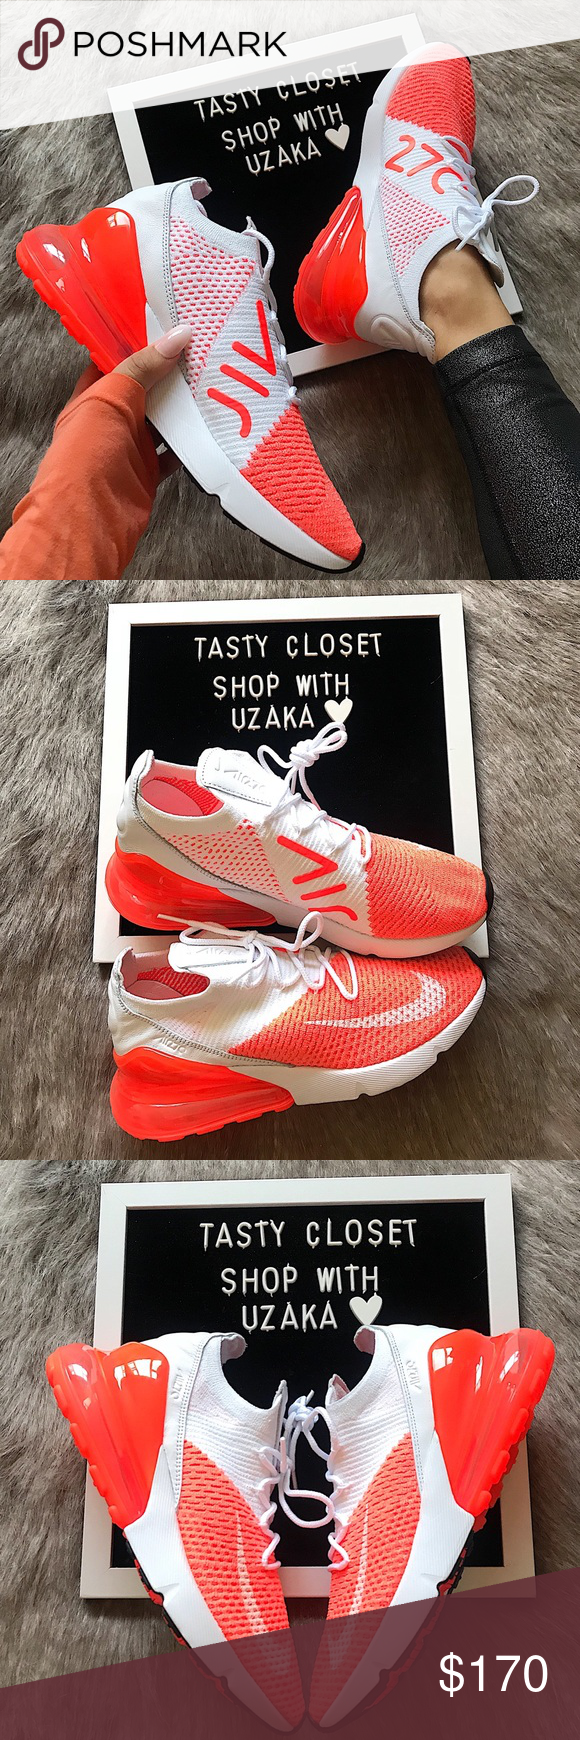 pretty nice 89c41 a5556 Nike air max 270 flyknit sneakers Nike air max 270 flyknit sneakers New  with box Crimson pulse white Nike Shoes Sneakers